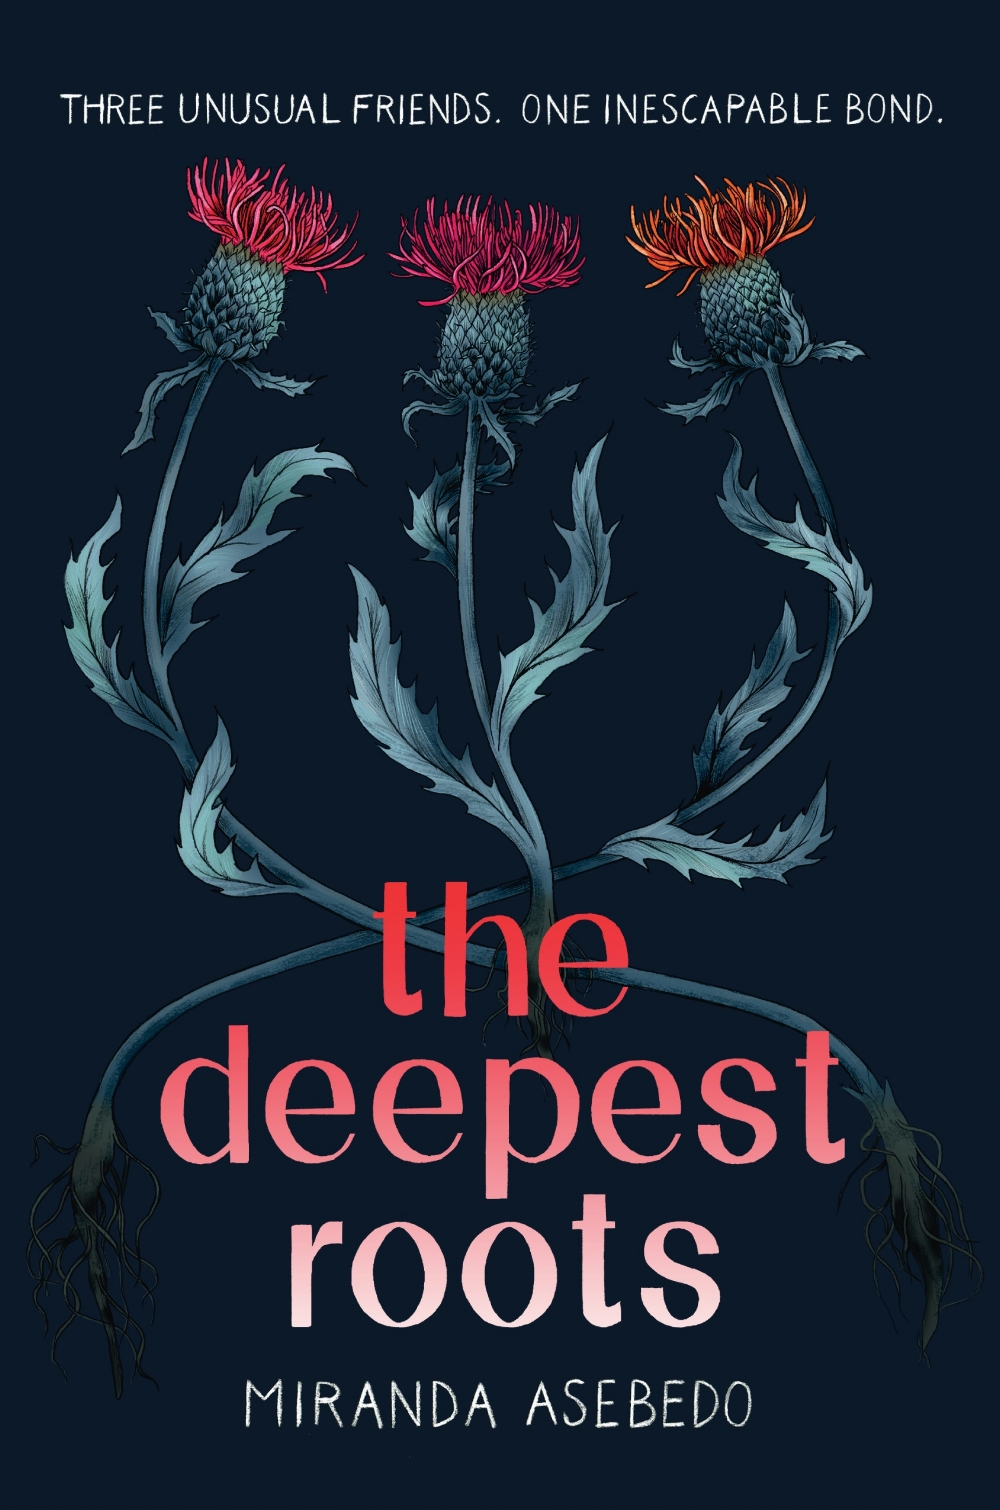 The Deepest Roots - Morgan Matson meets Maggie Stiefvater in a story that will make you believe in friendship, miracles, and maybe even magic.Cottonwood Hollow, Kansas, is a strange place. For the past century, every girl has been born with a special talent, like the ability to Fix any object, Heal any wound, or Find what is missing.To best friends Rome, Lux, and Mercy, their abilities often feel more like a curse. Rome may be able to Fix anything she touches, but that won't help her mom pay rent. Lux's ability to attract any man with a smile has always meant danger. And although Mercy can make Enough of whatever is needed, even that won't help when her friendship with Rome and Lux is tested.Follow three best friends in this enchanting debut novel as they discover that friendship is stronger than curses, that trust is worth the risk, and sometimes, what you've been looking for has been under your feet the whole time.